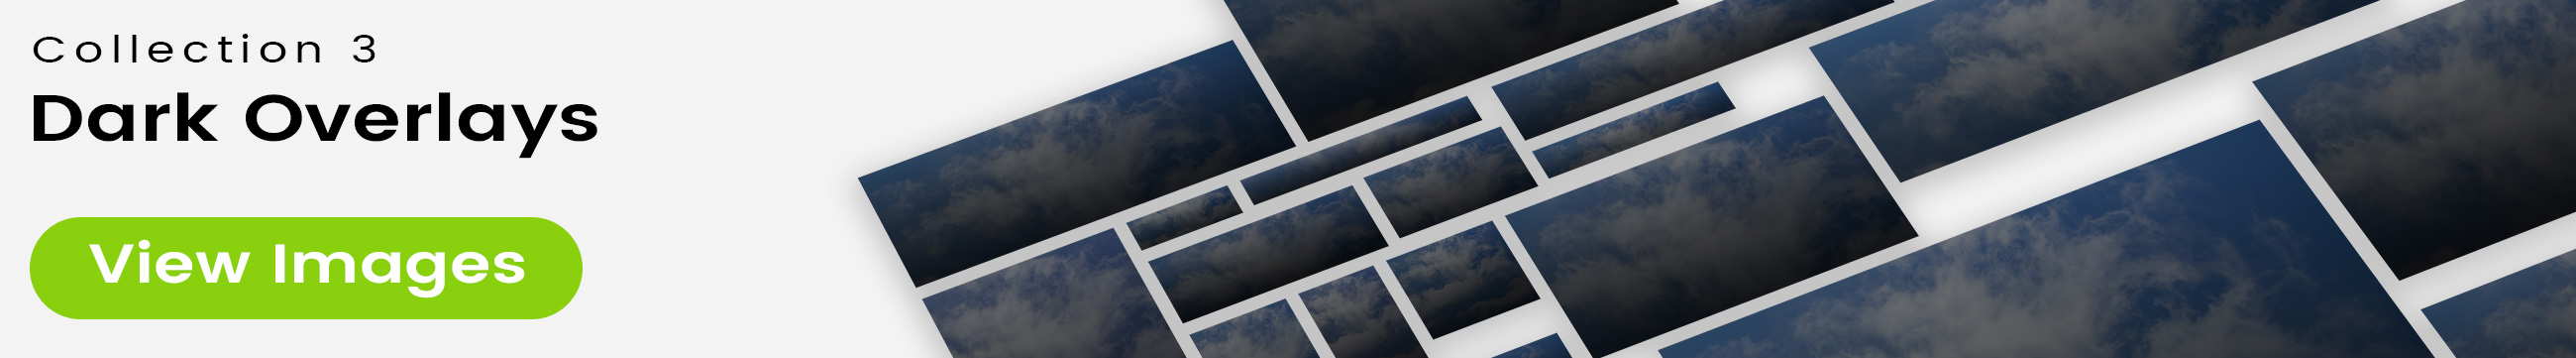 See 25 bonus images included with clouds stock image 9481. Collection 3 of 4 features a dark overlay design.